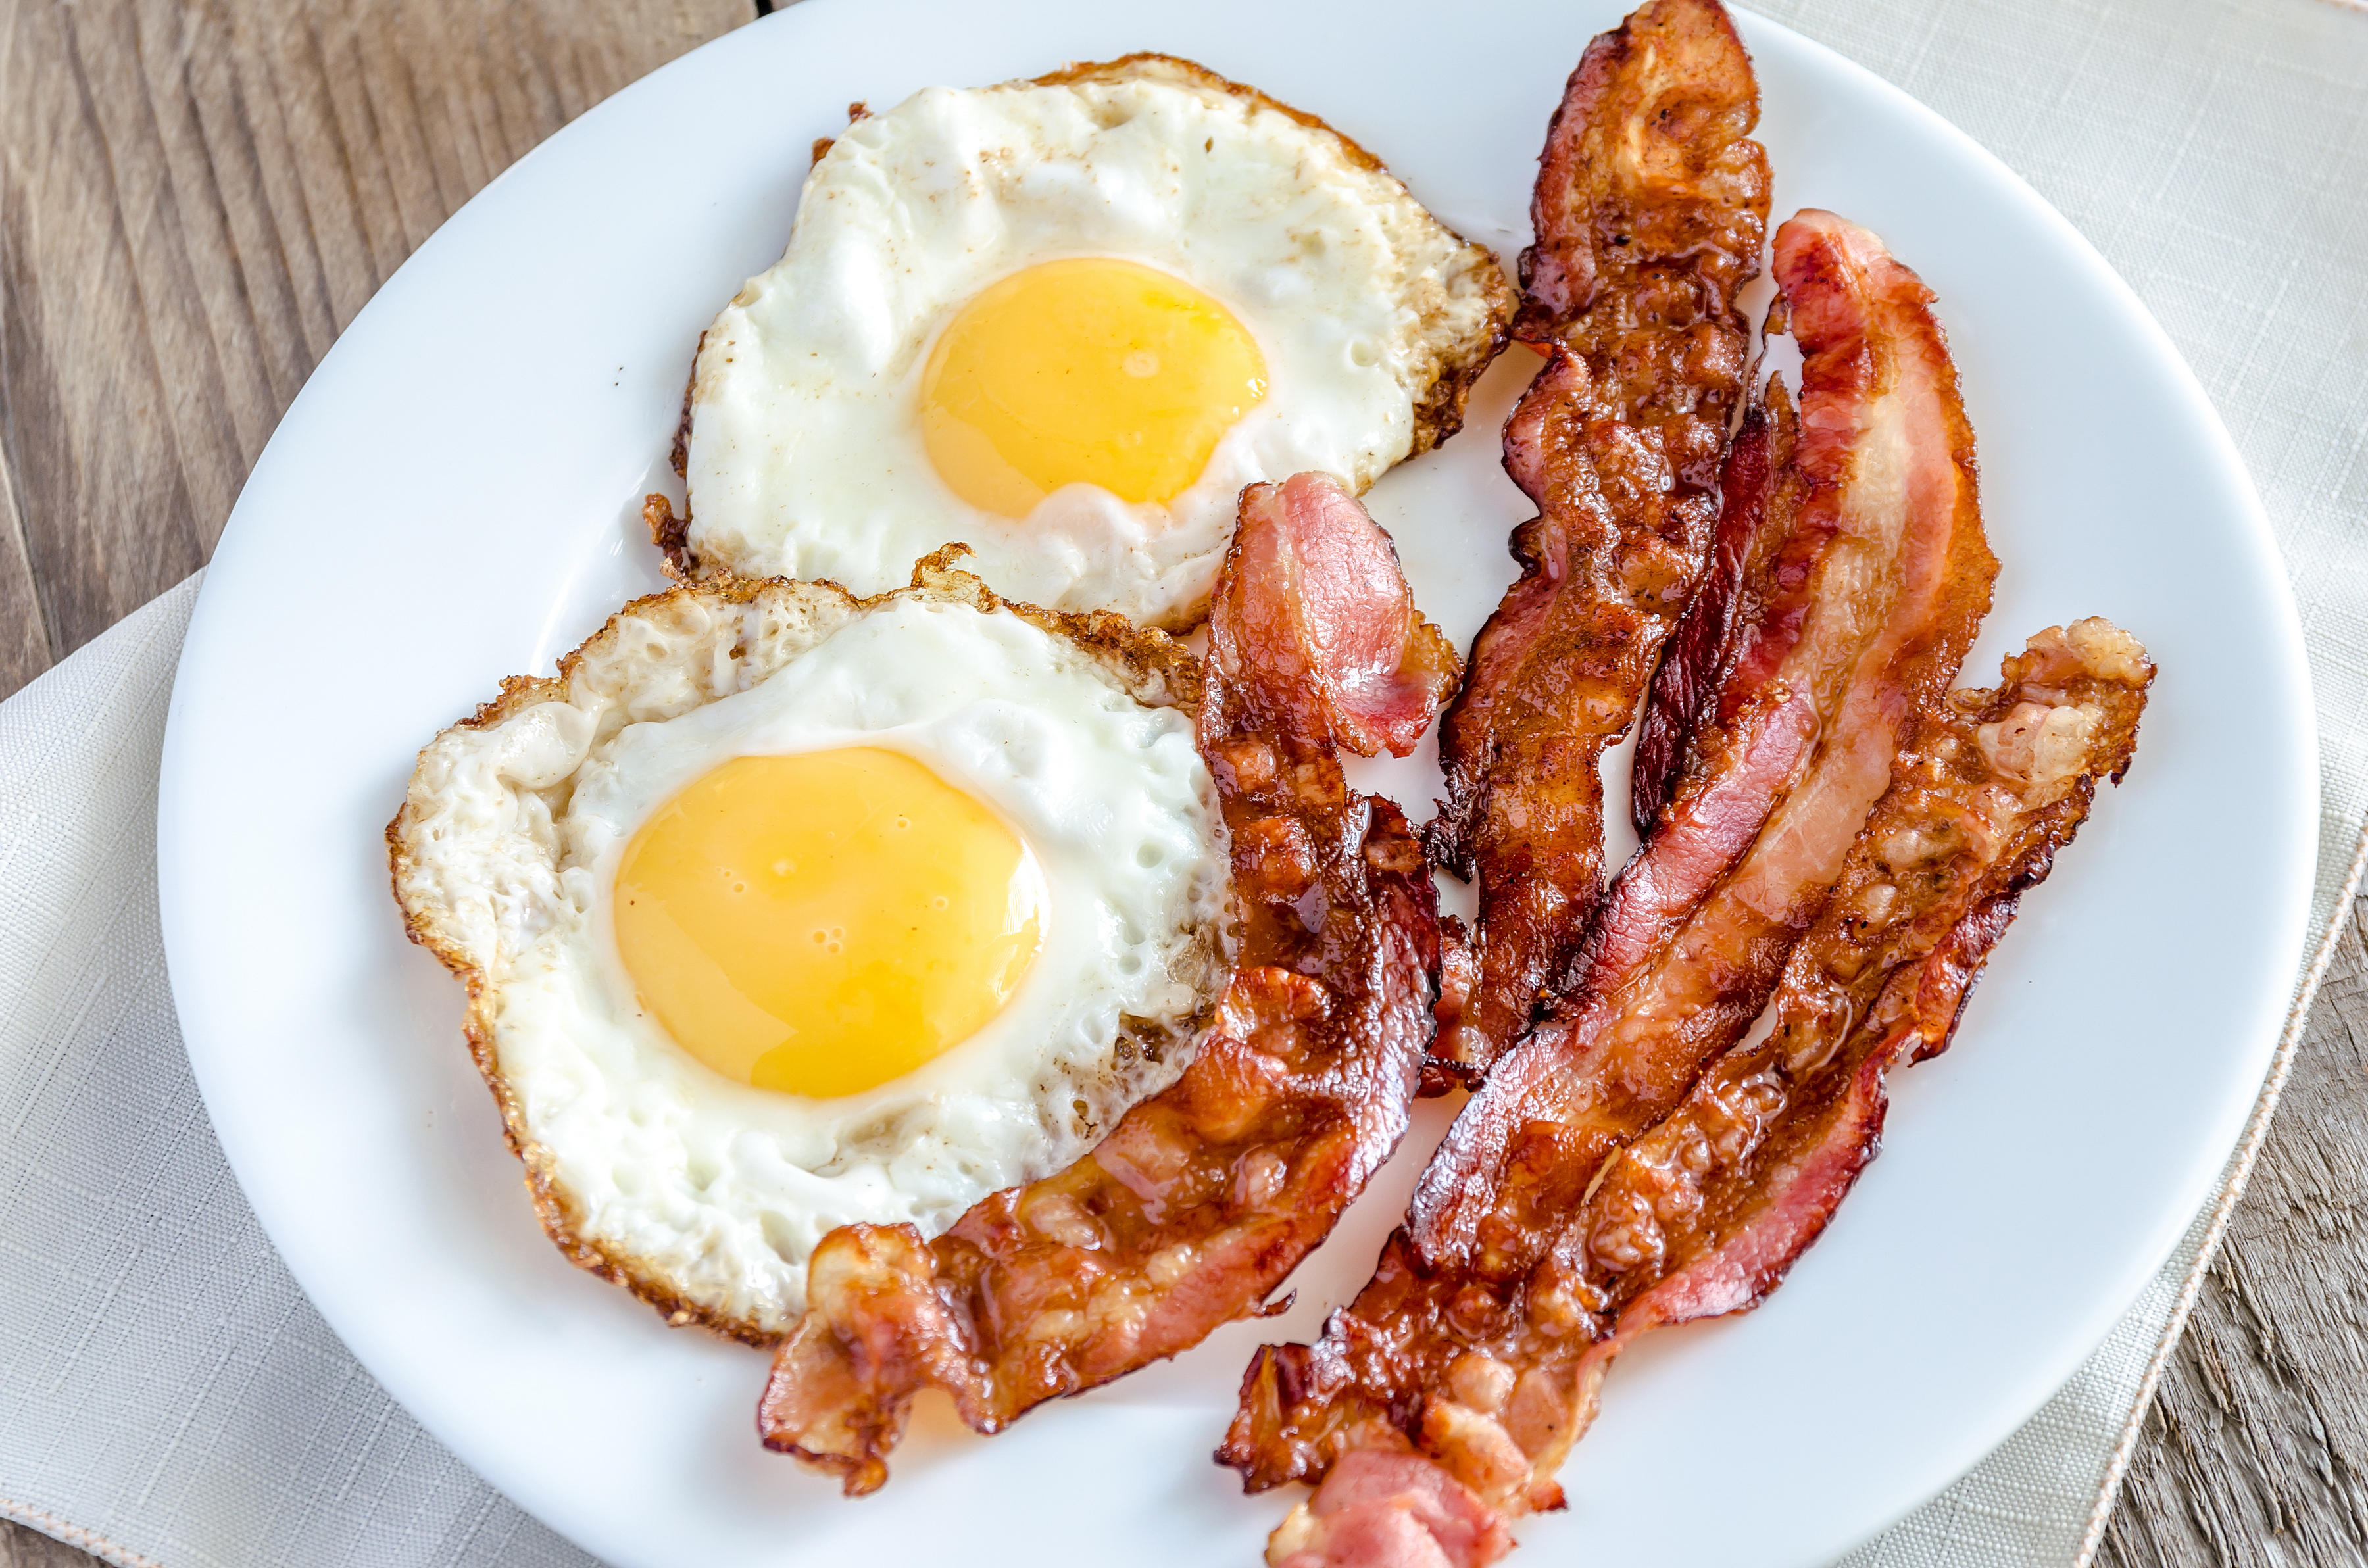 Nutrient in meat and eggs may play role in blood clotting ...